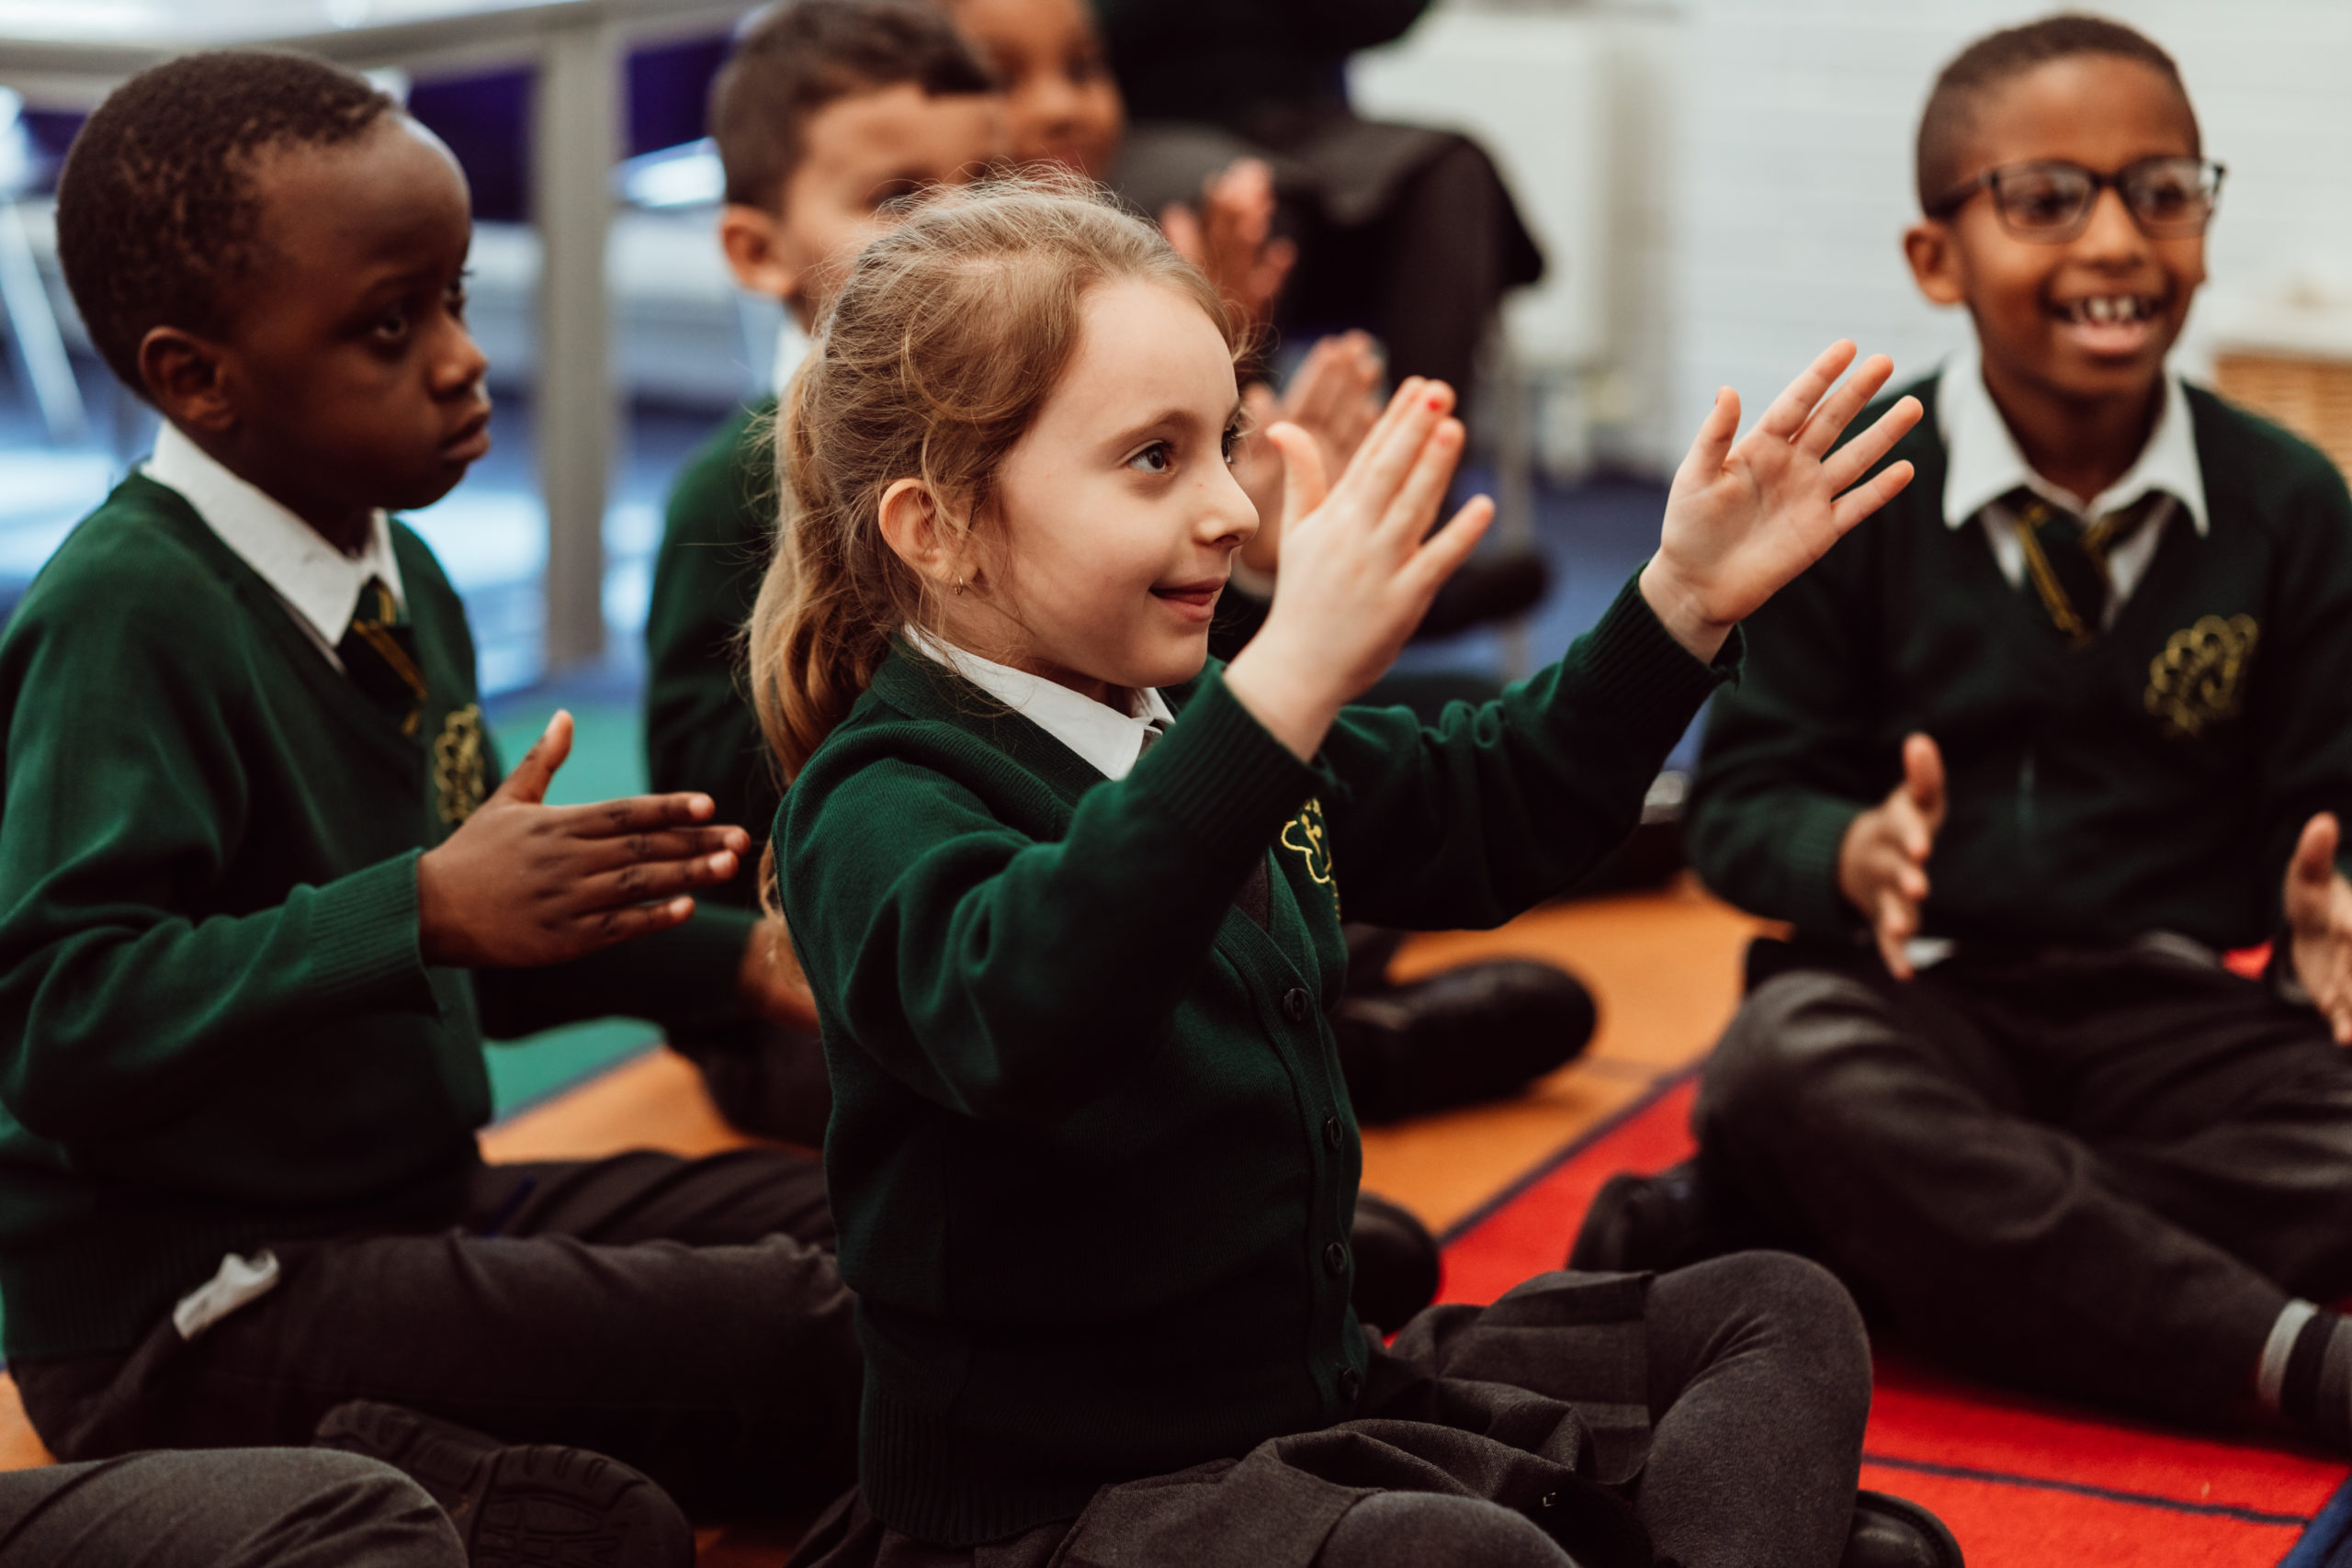 Young girl, her hands in the air, smiling about to clap, sitting on the floor in a classroom.